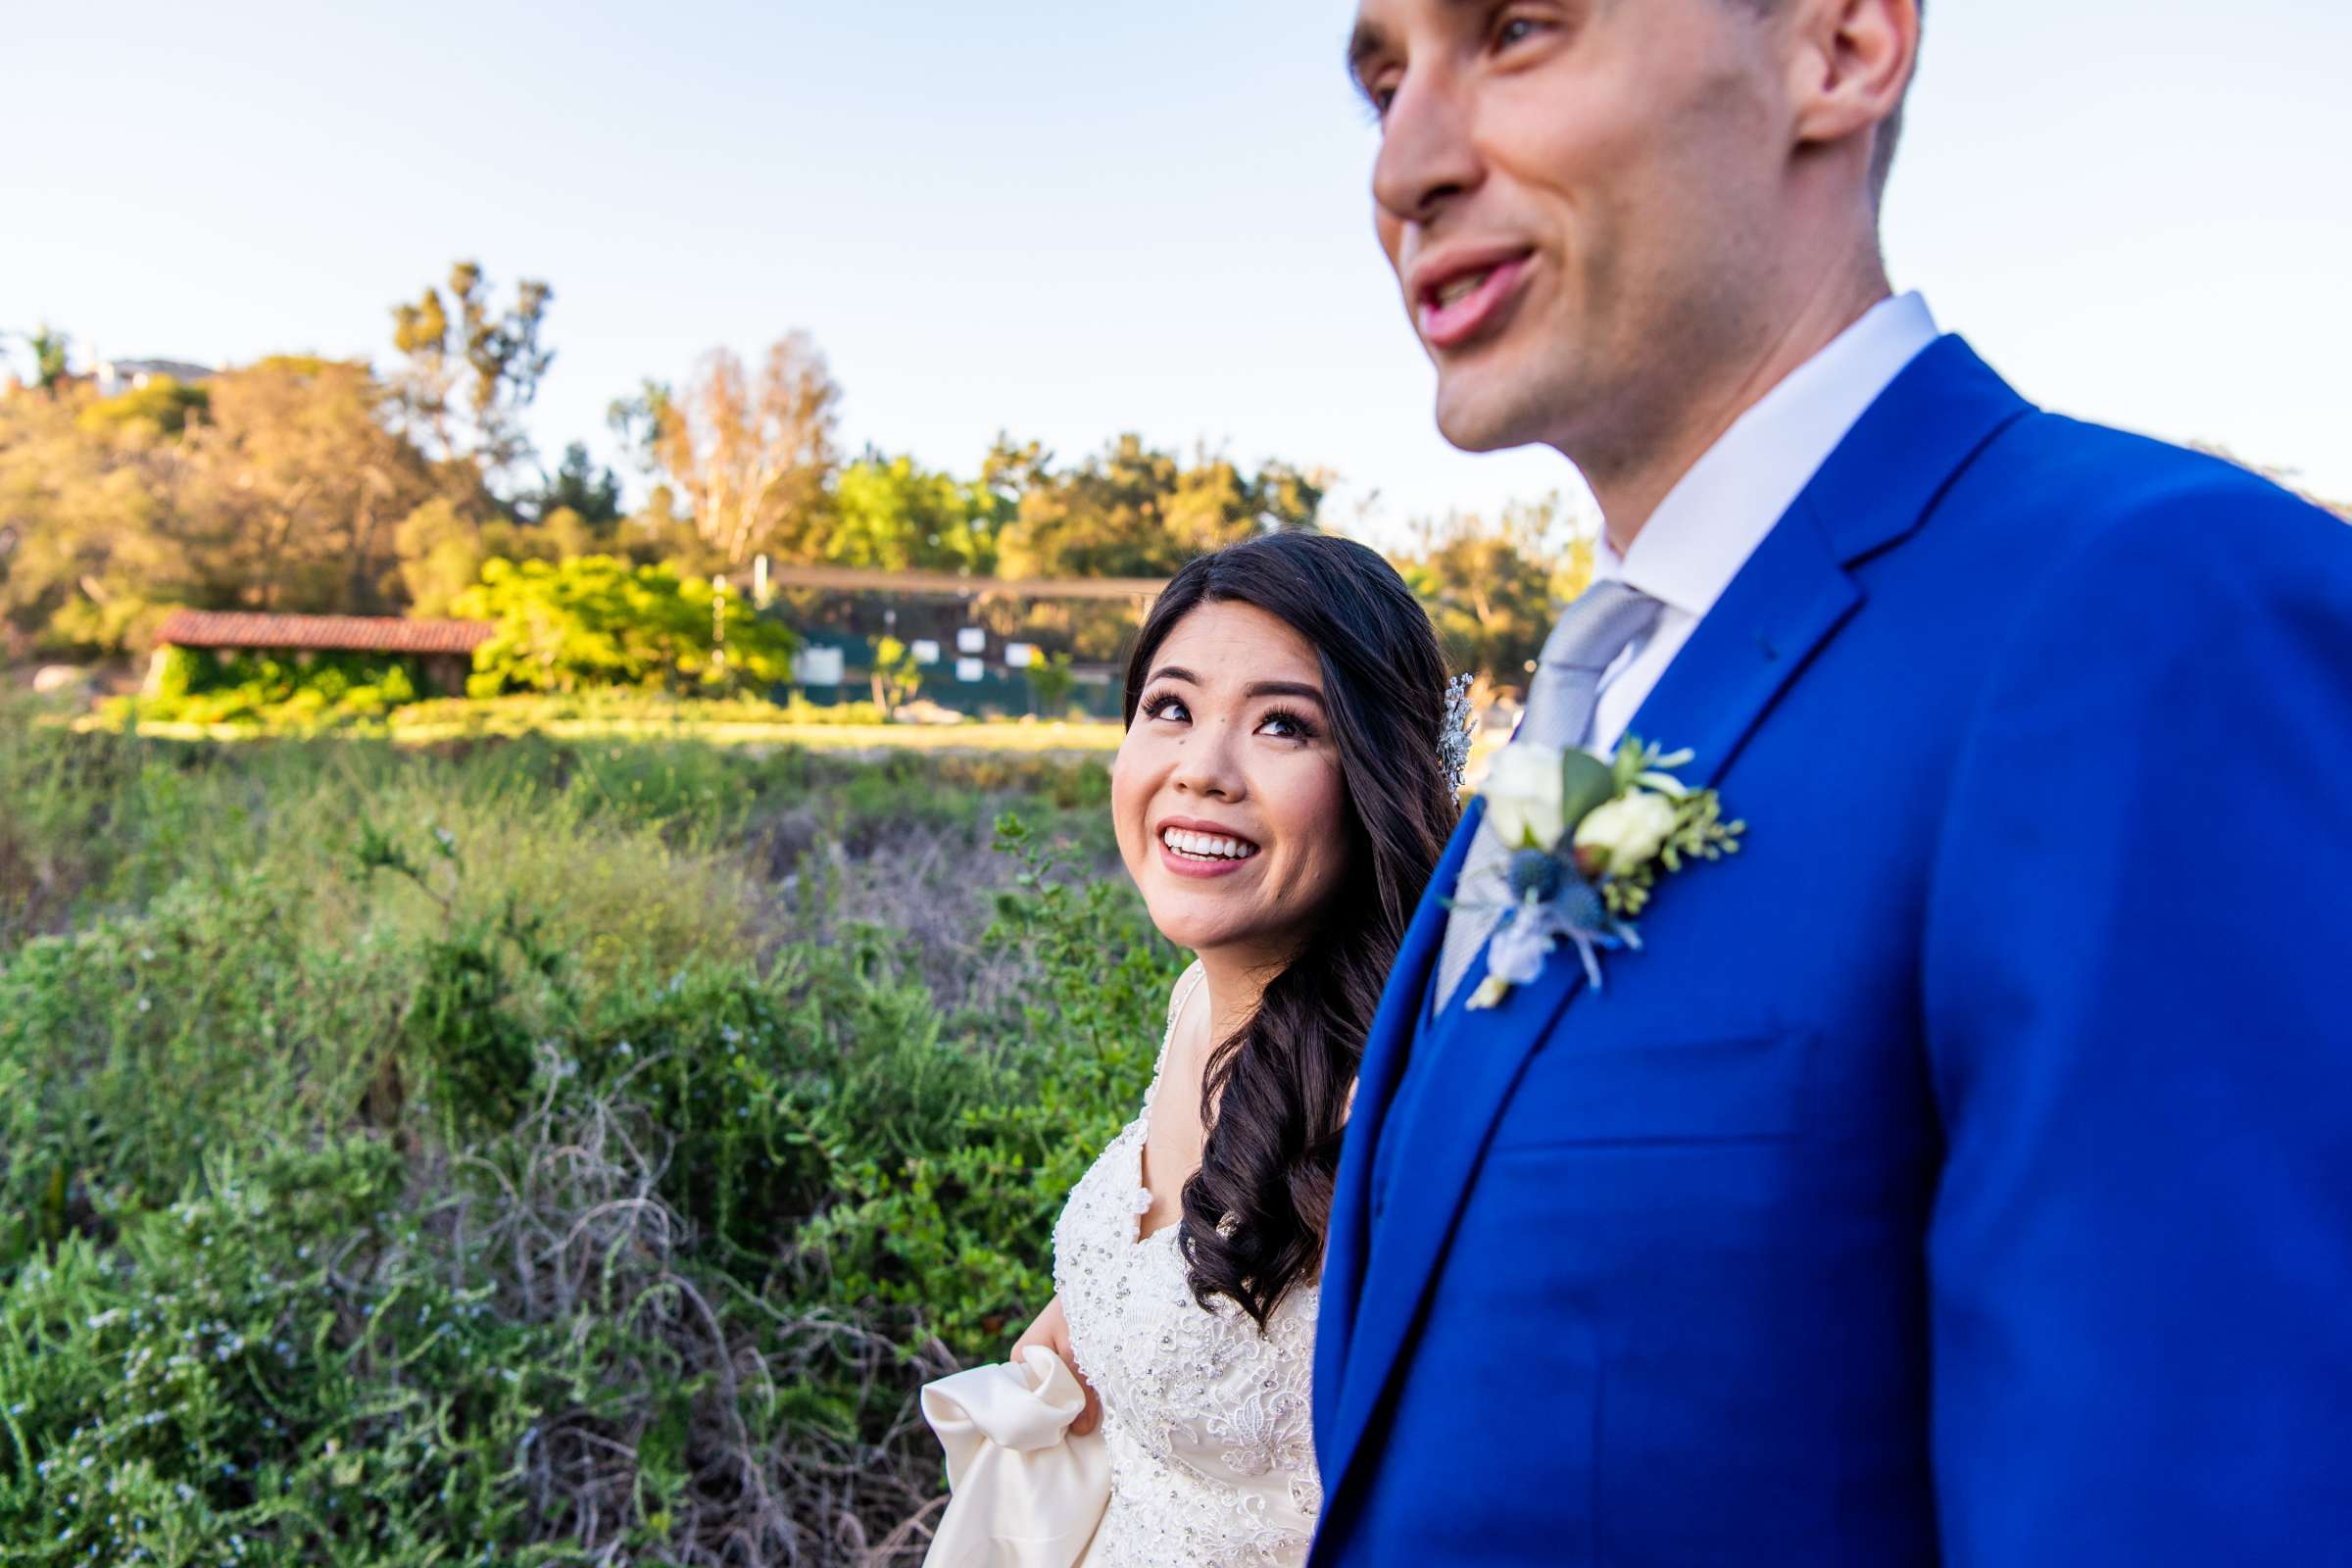 Mt Woodson Castle Wedding coordinated by I Do Weddings, Aya and Jared Wedding Photo #486986 by True Photography